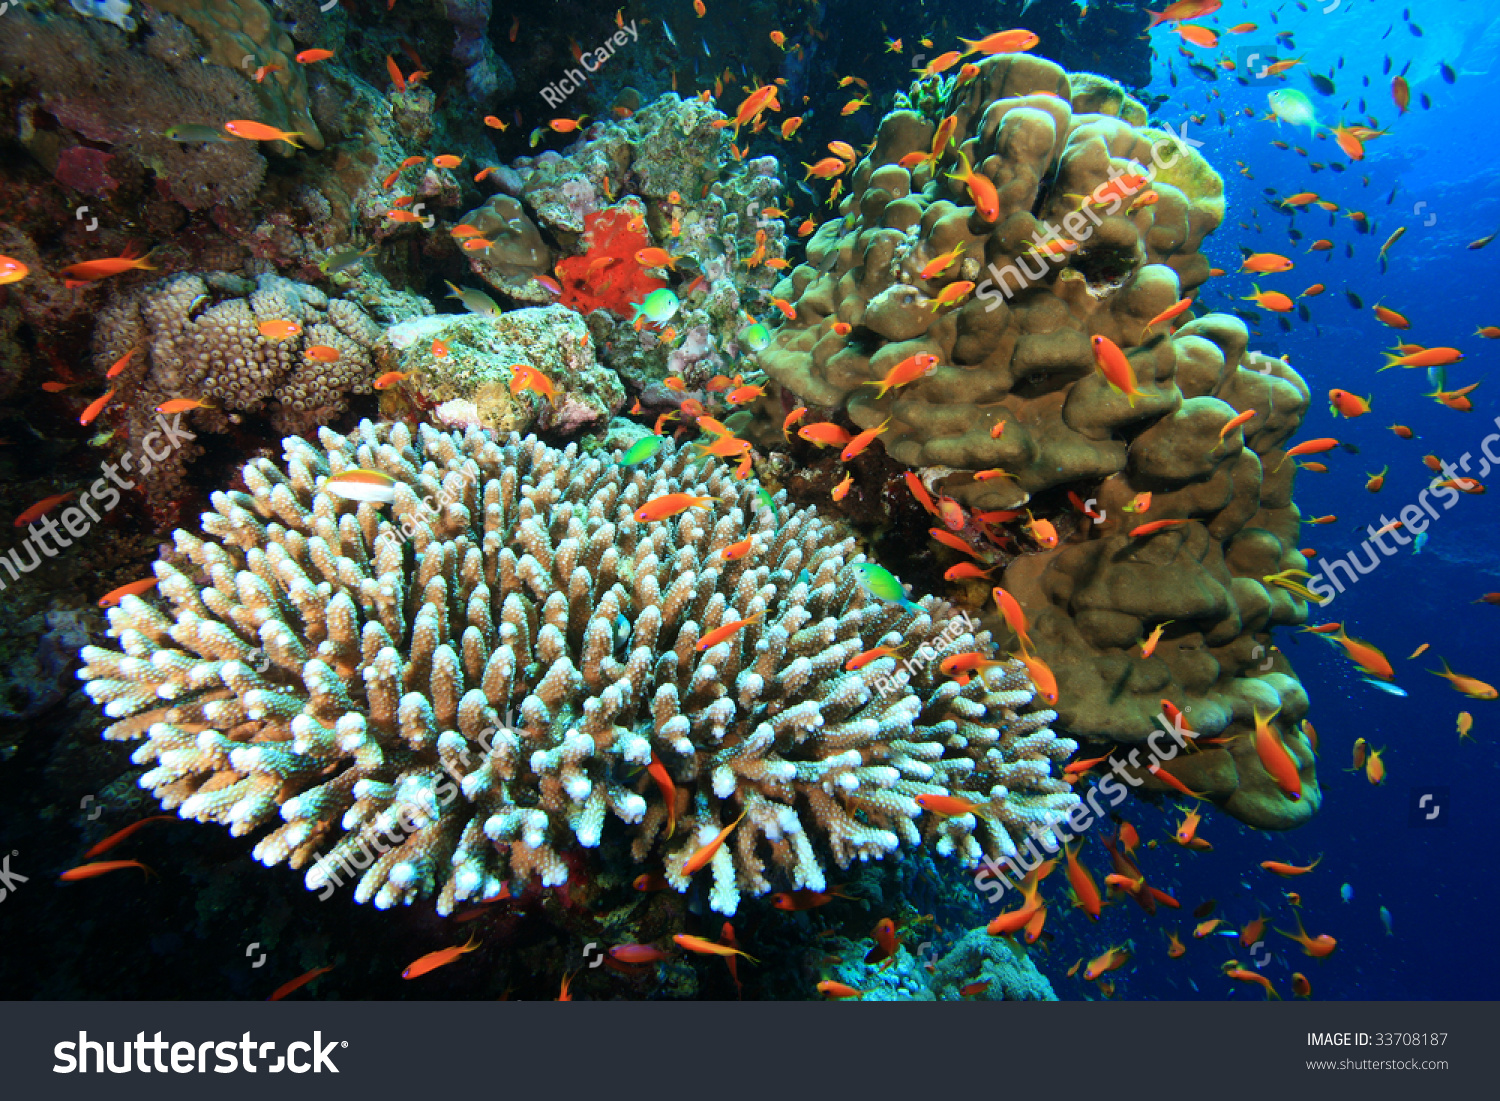 beautiful colorful coral reefs - photo #33